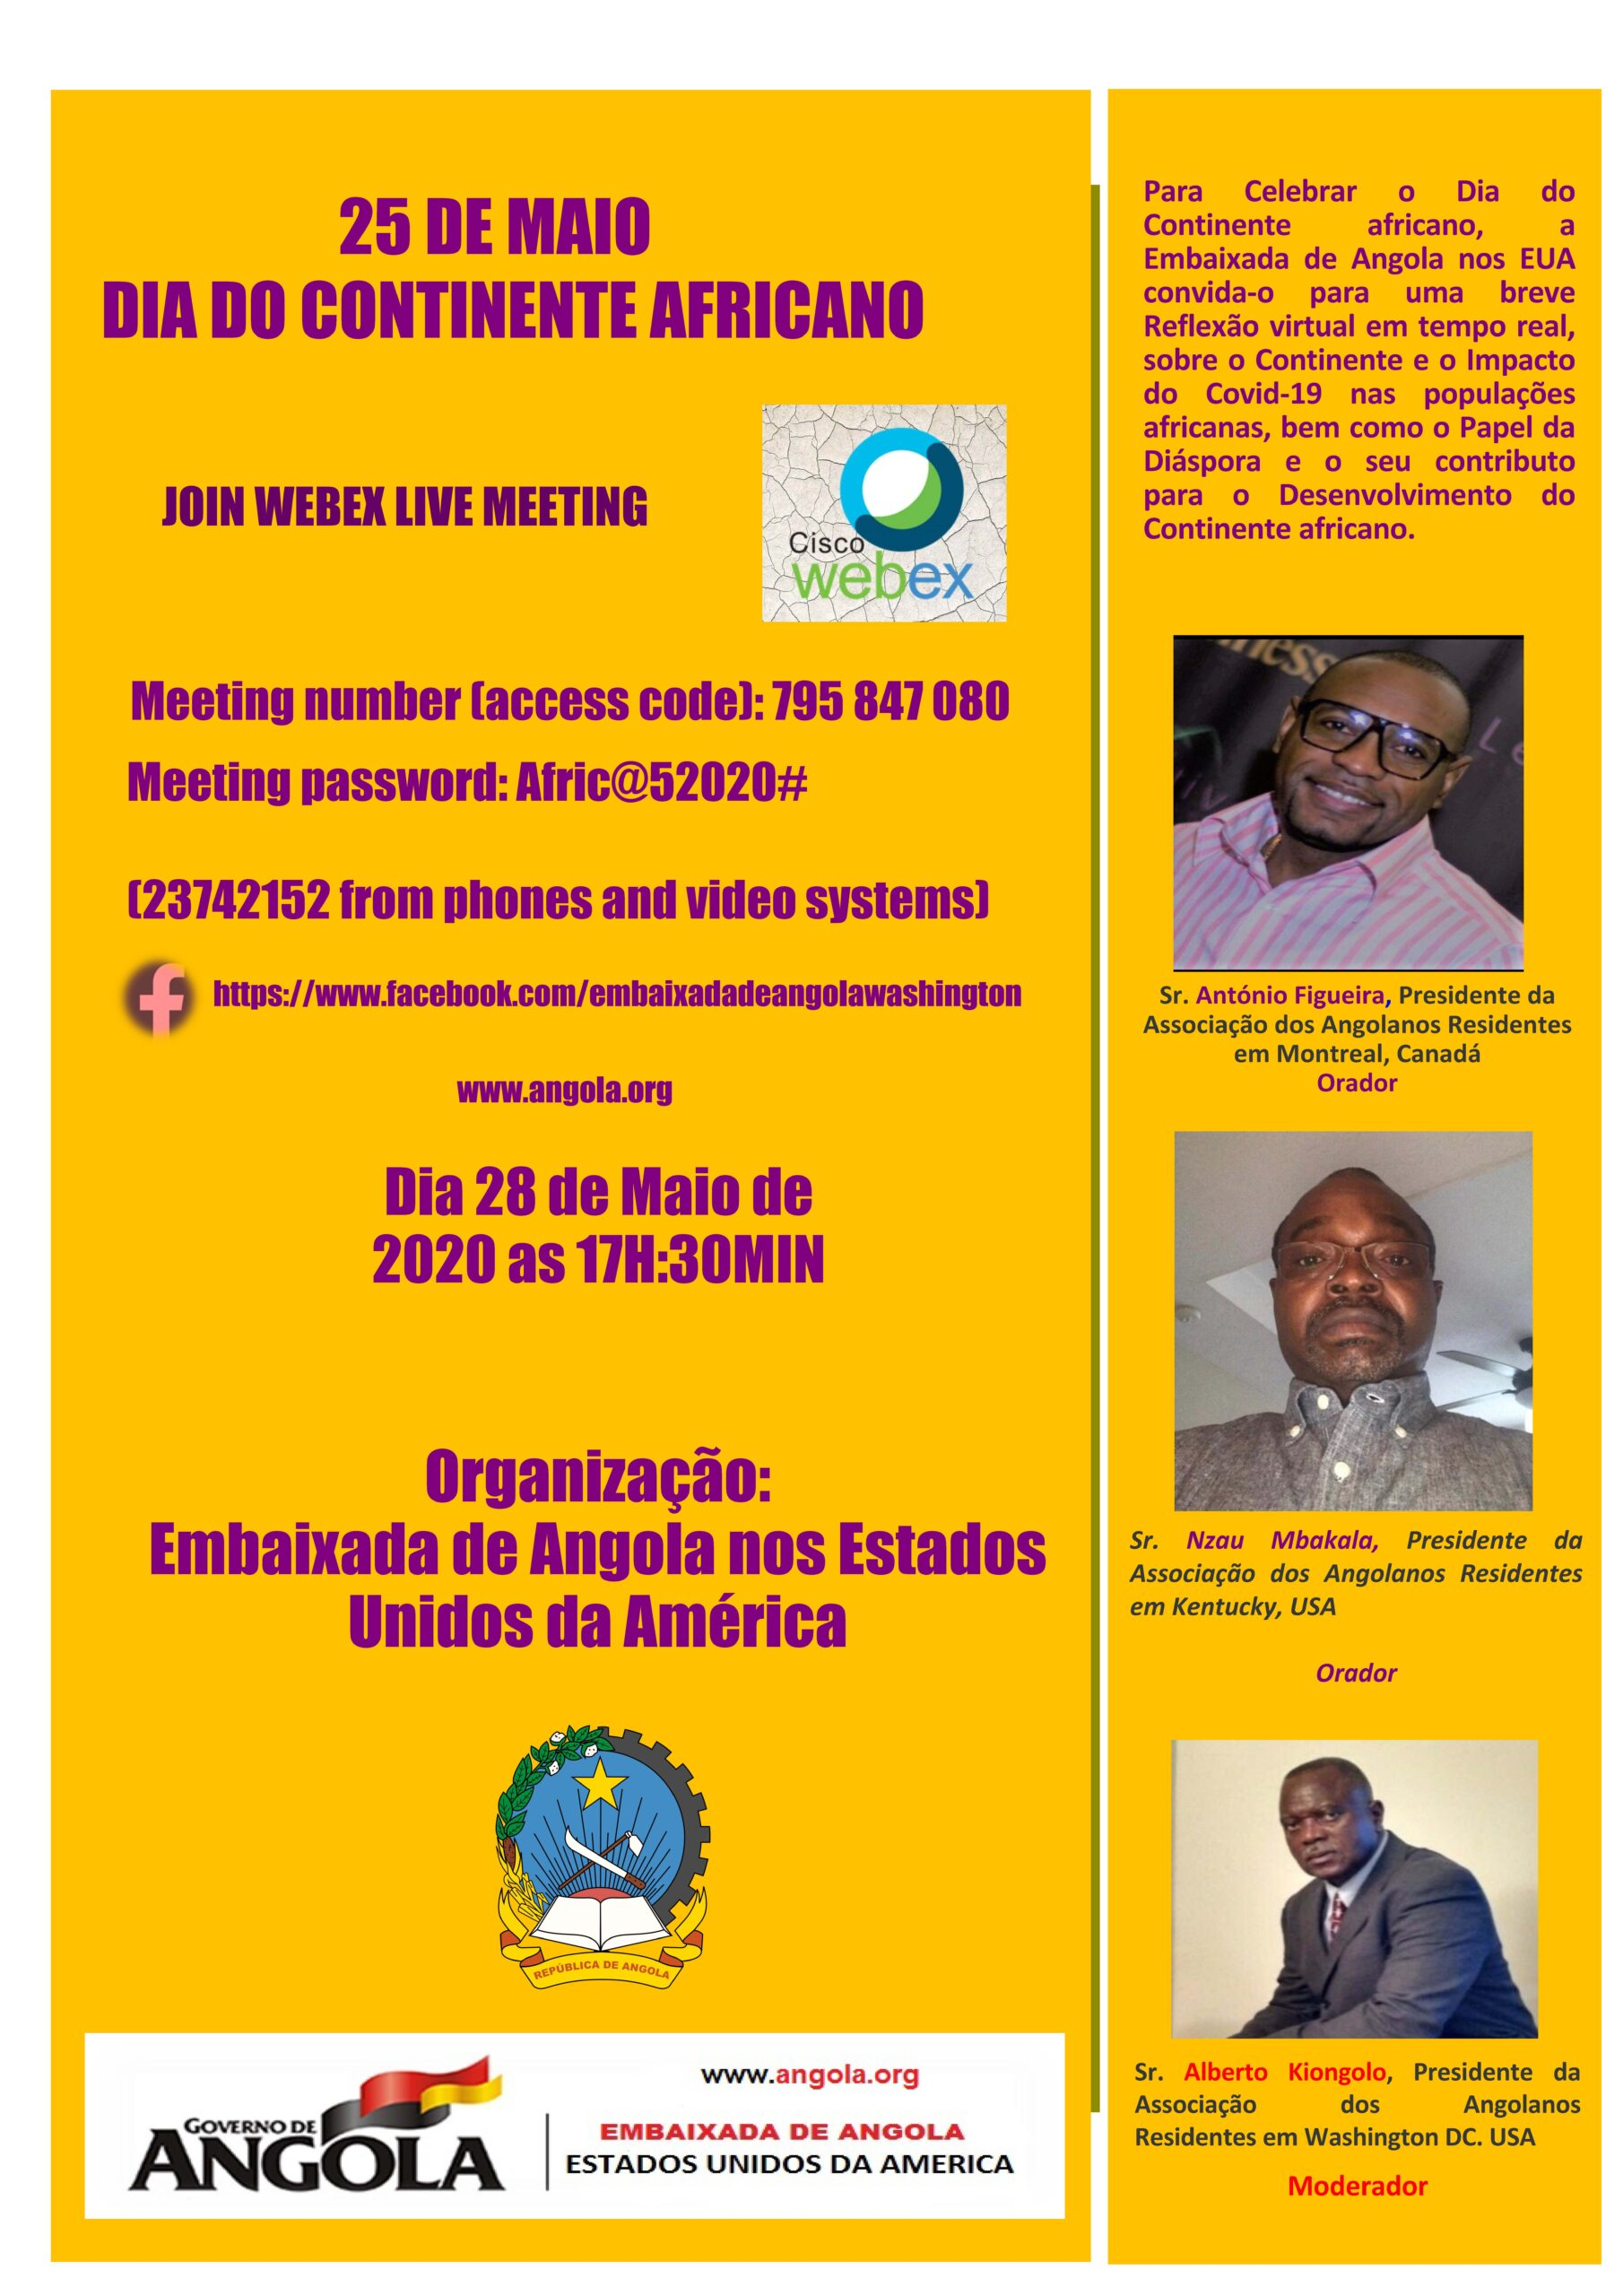 Angola Embassy invites to celebrate Africa Day on May 28 at 5:30 pm